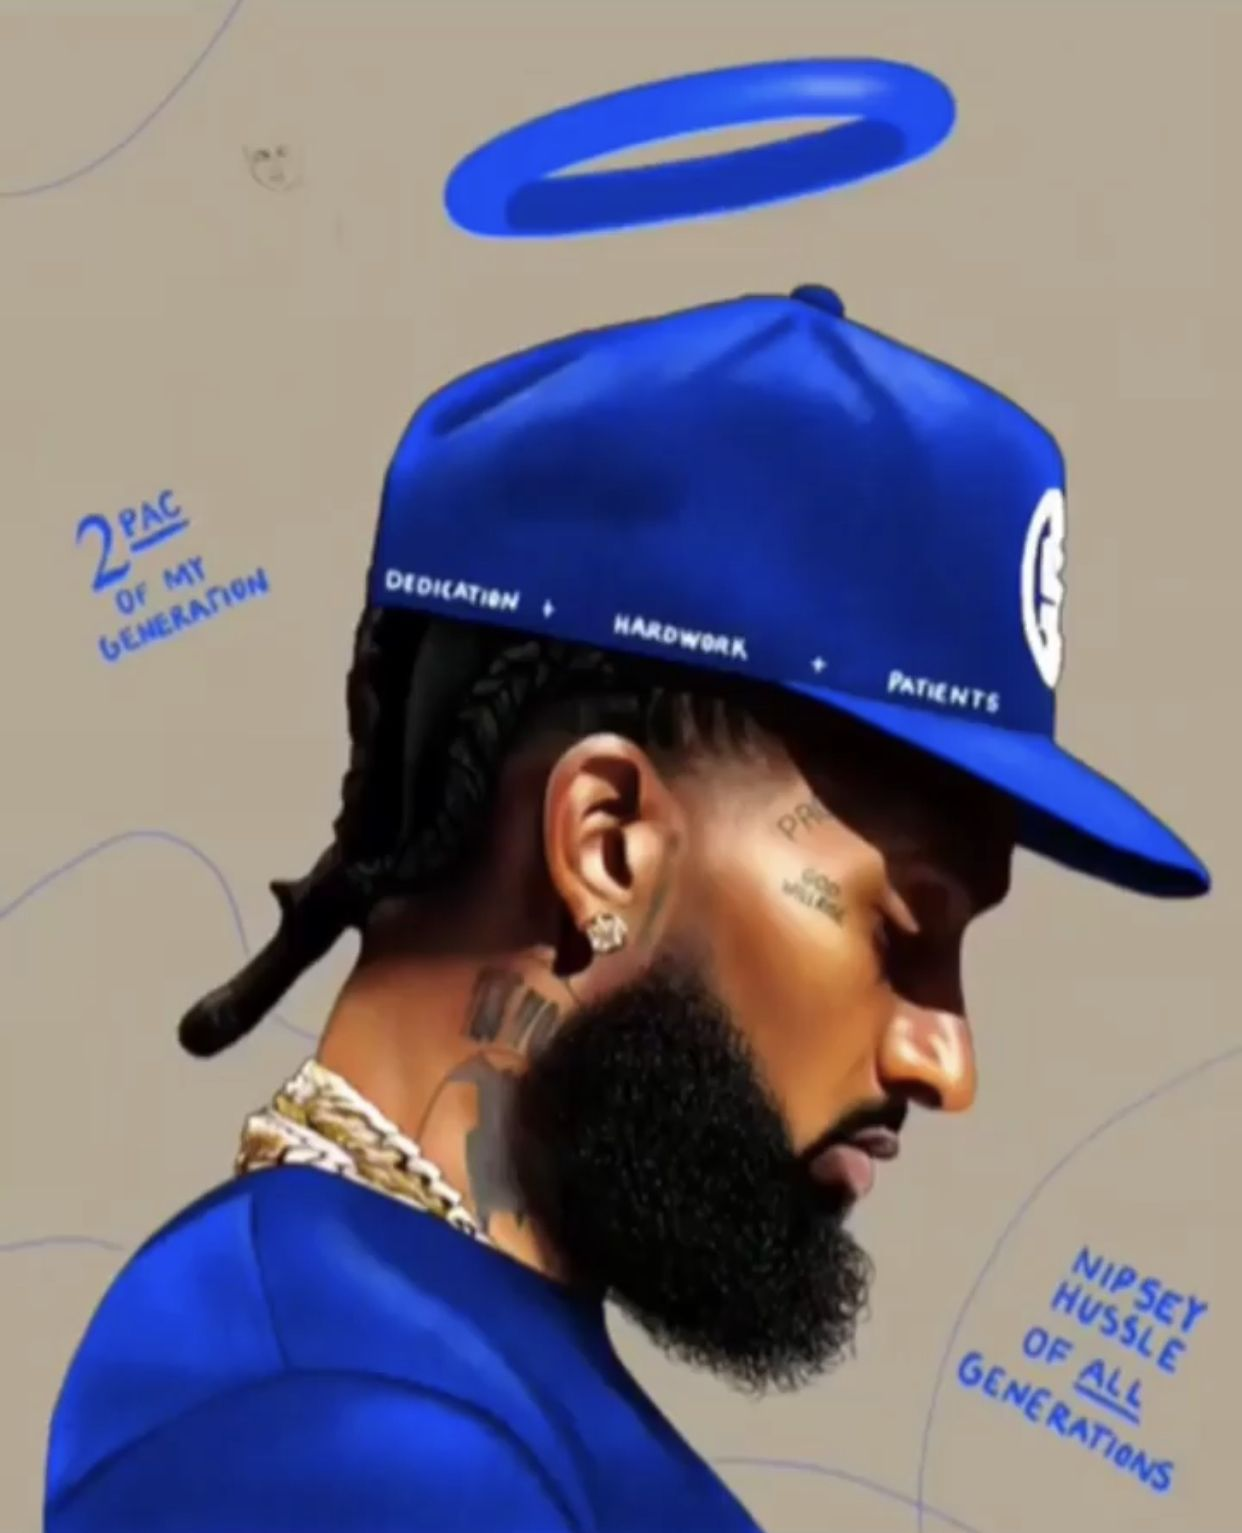 Pin by Leka Havili on Nipsey THA GREAT Hussle! Black art